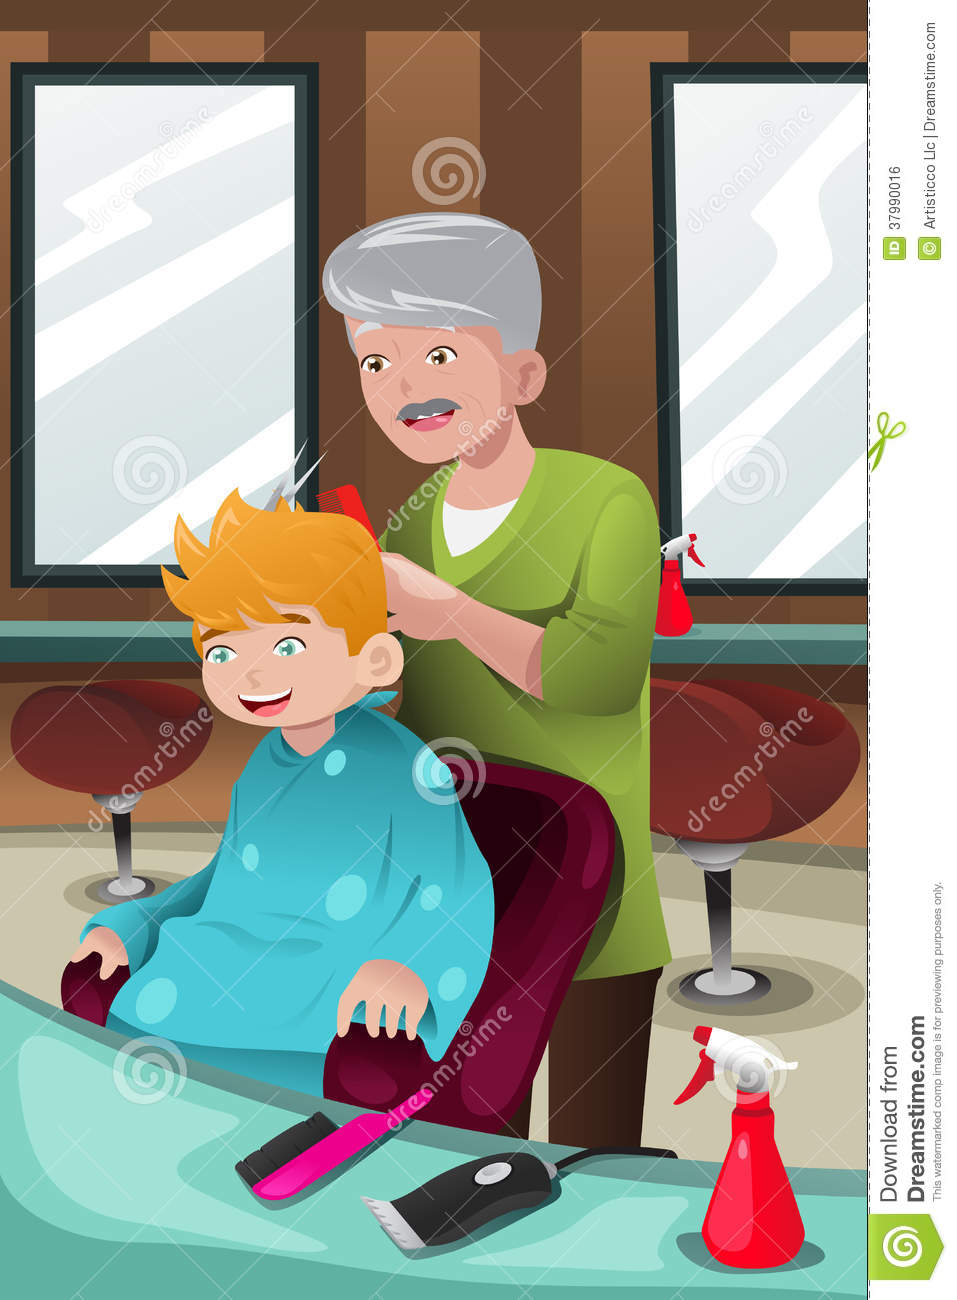 Kid Getting A Haircut Royalty Free Stock Image - Image: 37990016